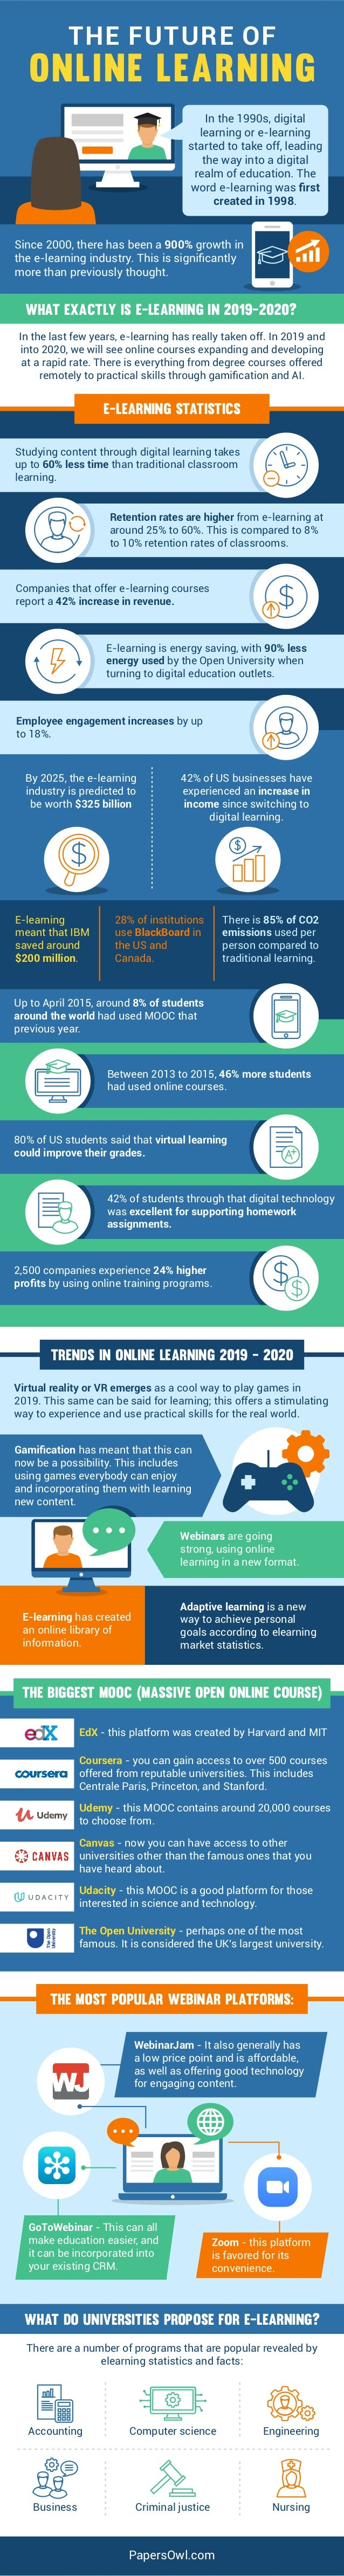 Studying content through digital learning takes up to 60% less time than traditional classroom learning. Retention rates a...